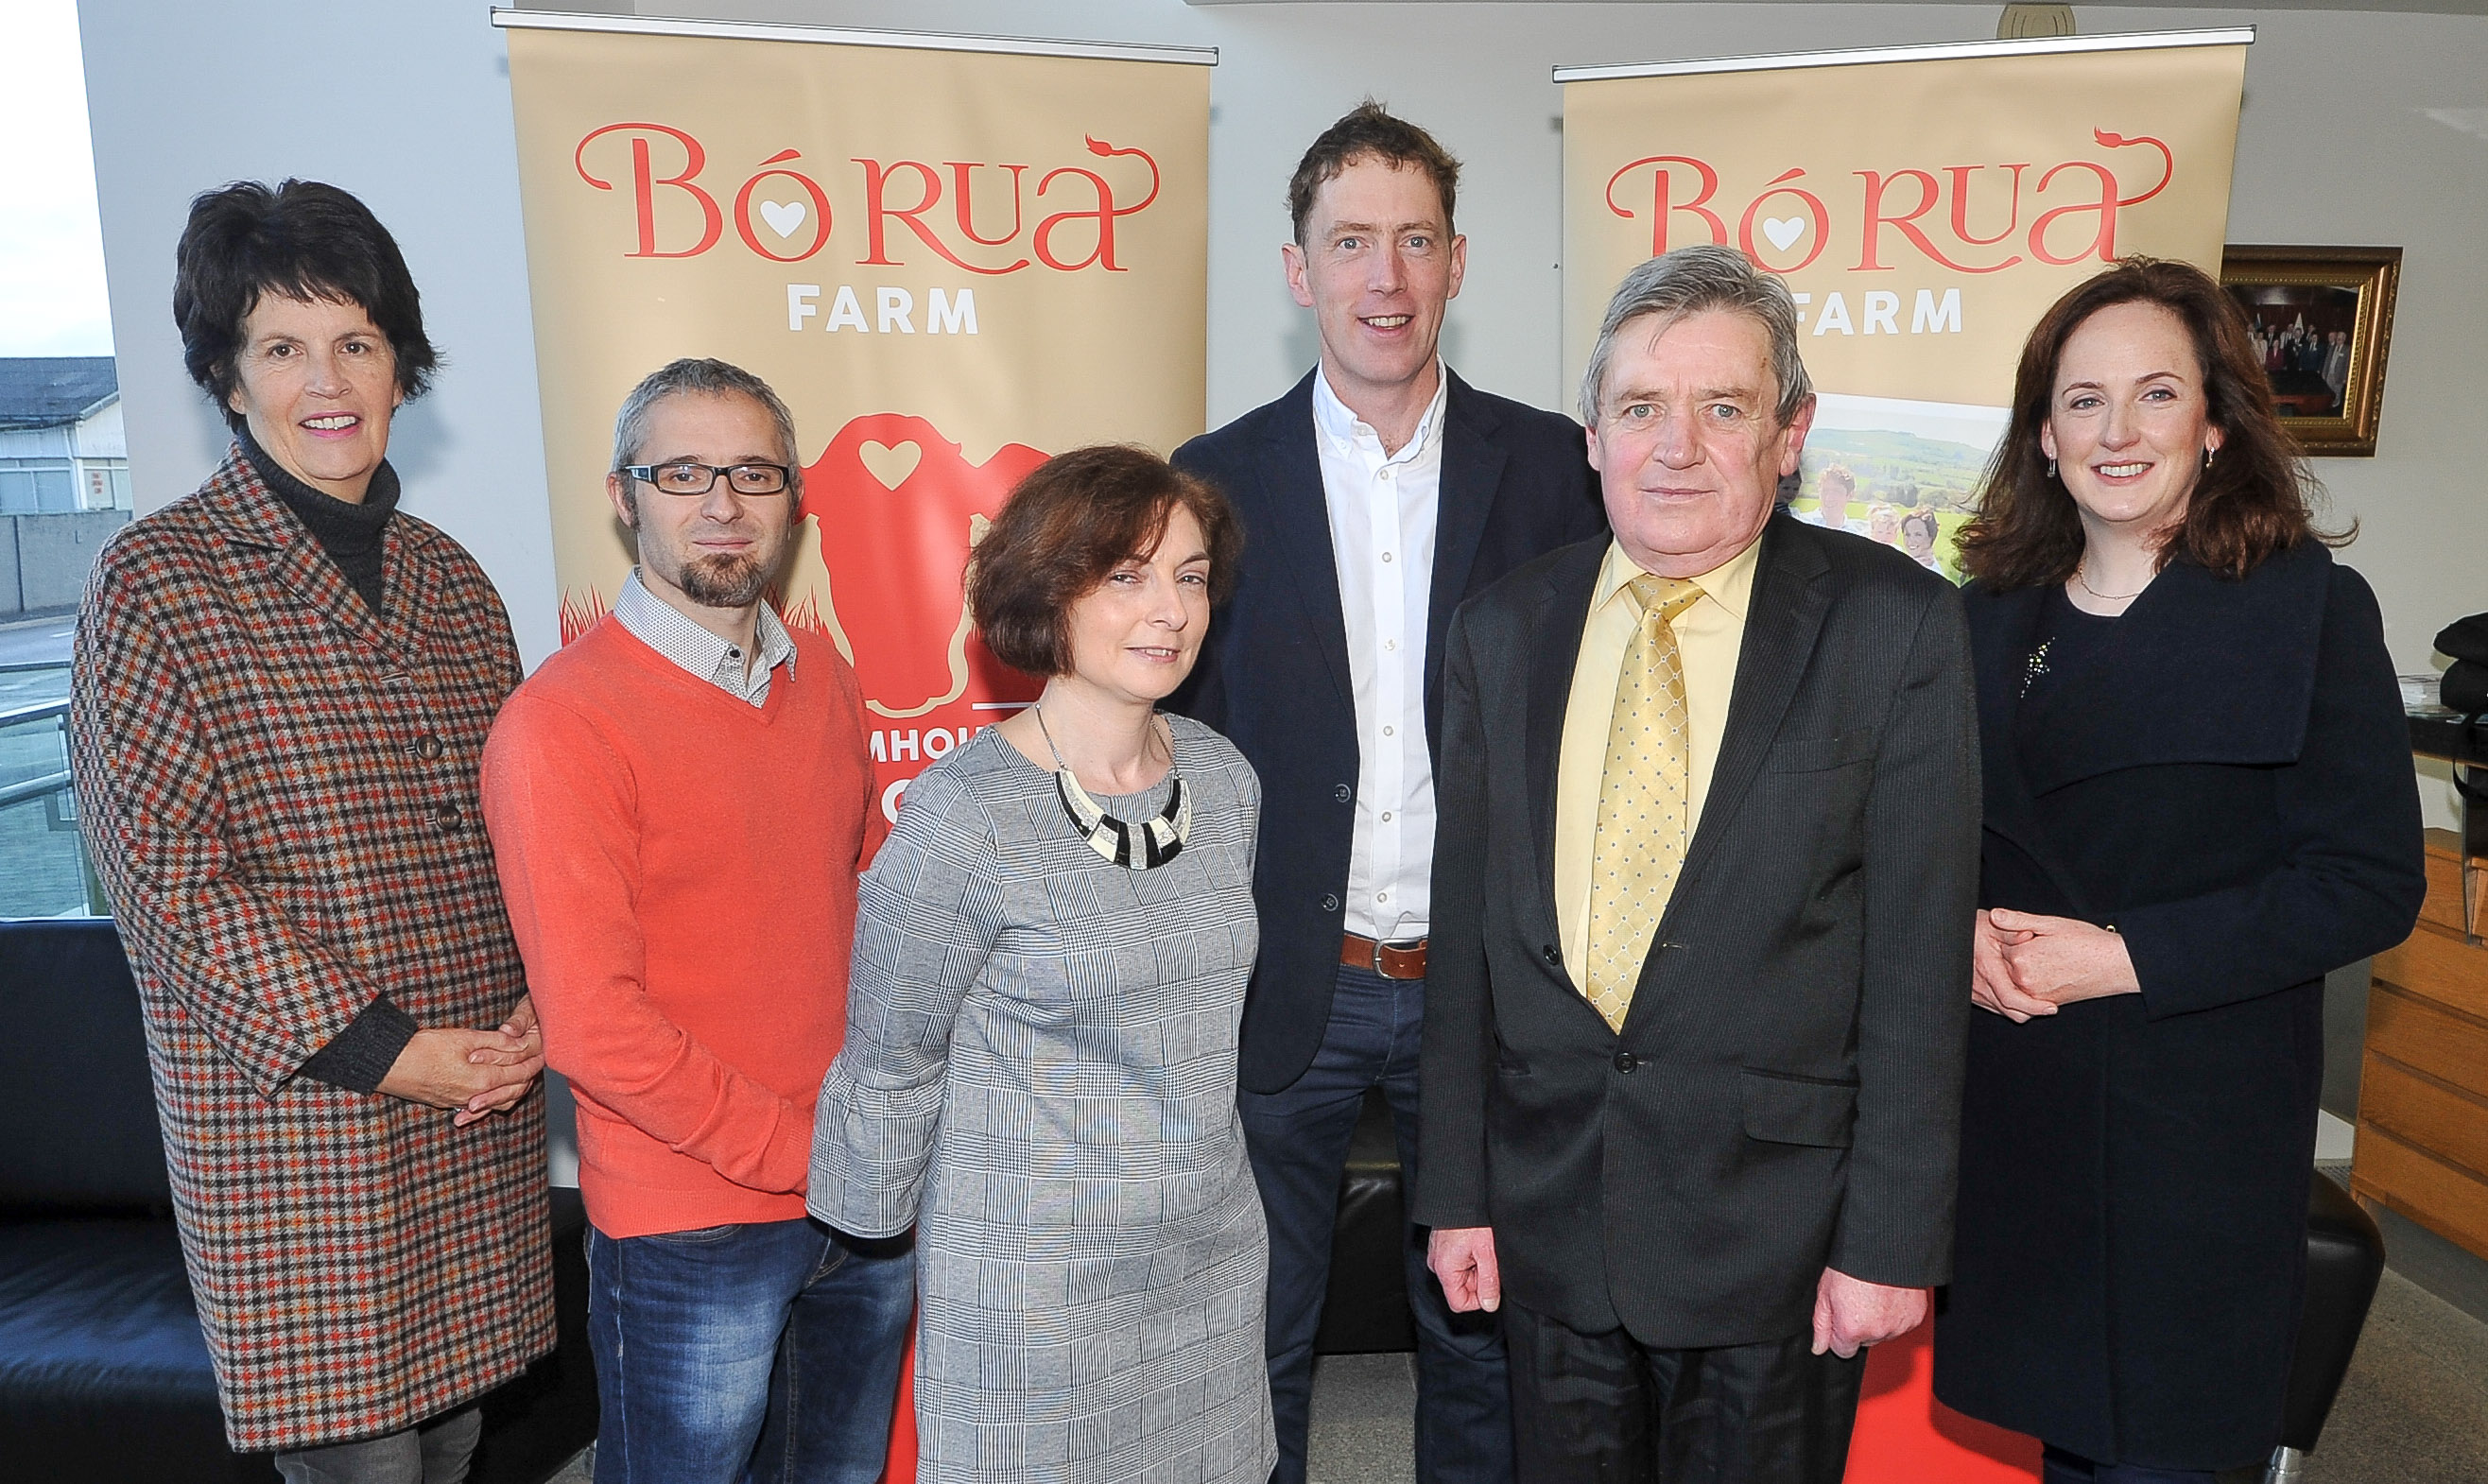 First Leader Project for Cork approved in North Cork – More to follow